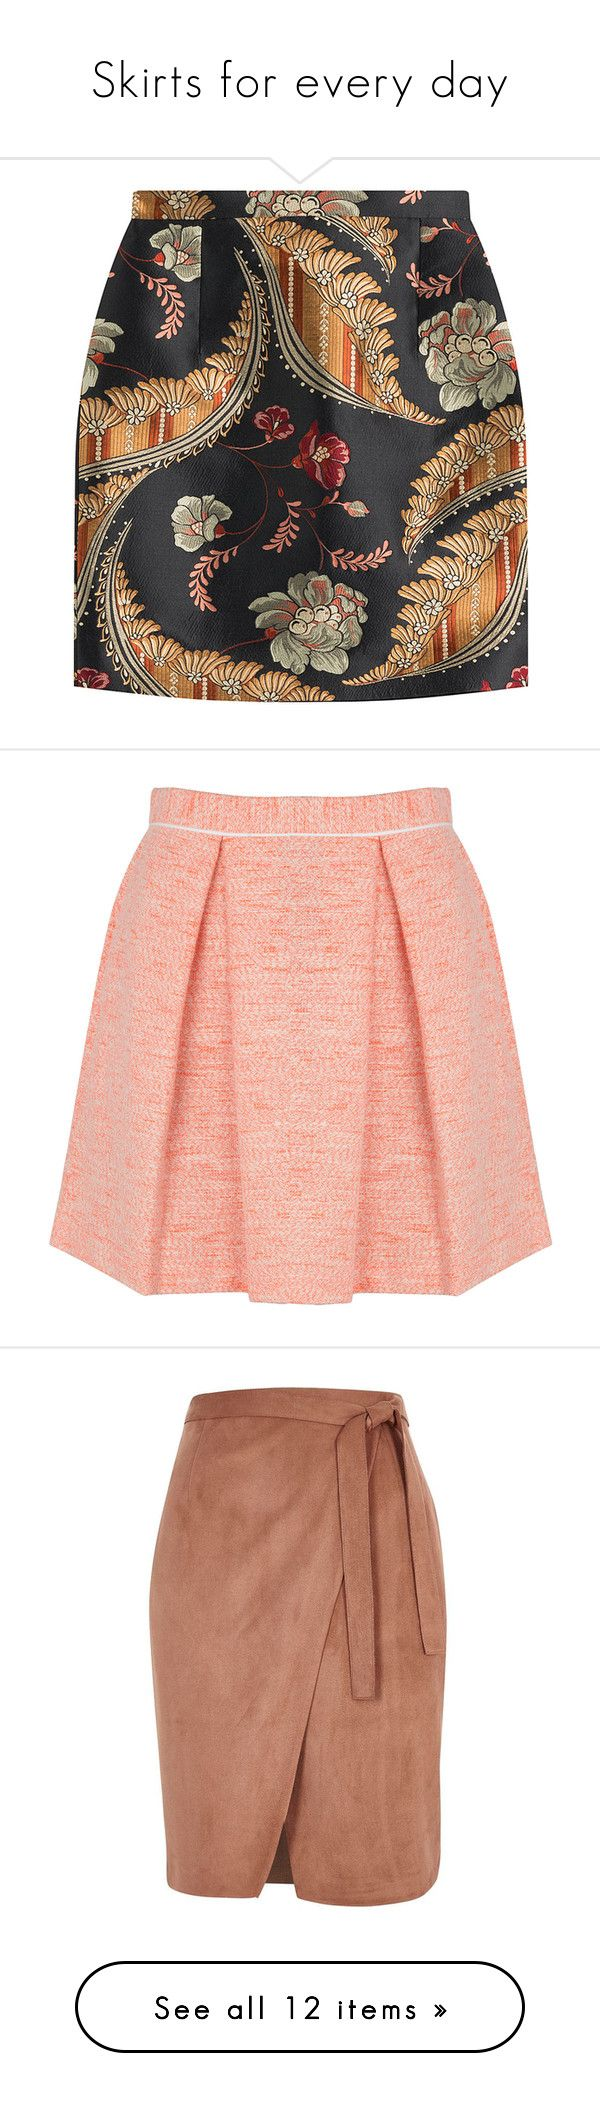 """""""Skirts for every day"""" by na-pan ❤ liked on Polyvore featuring skirts, mini skirts, bottoms, faldas, saia, multicolor, colorful skirts, multicolor skirt, zipper skirt and mini skirt"""